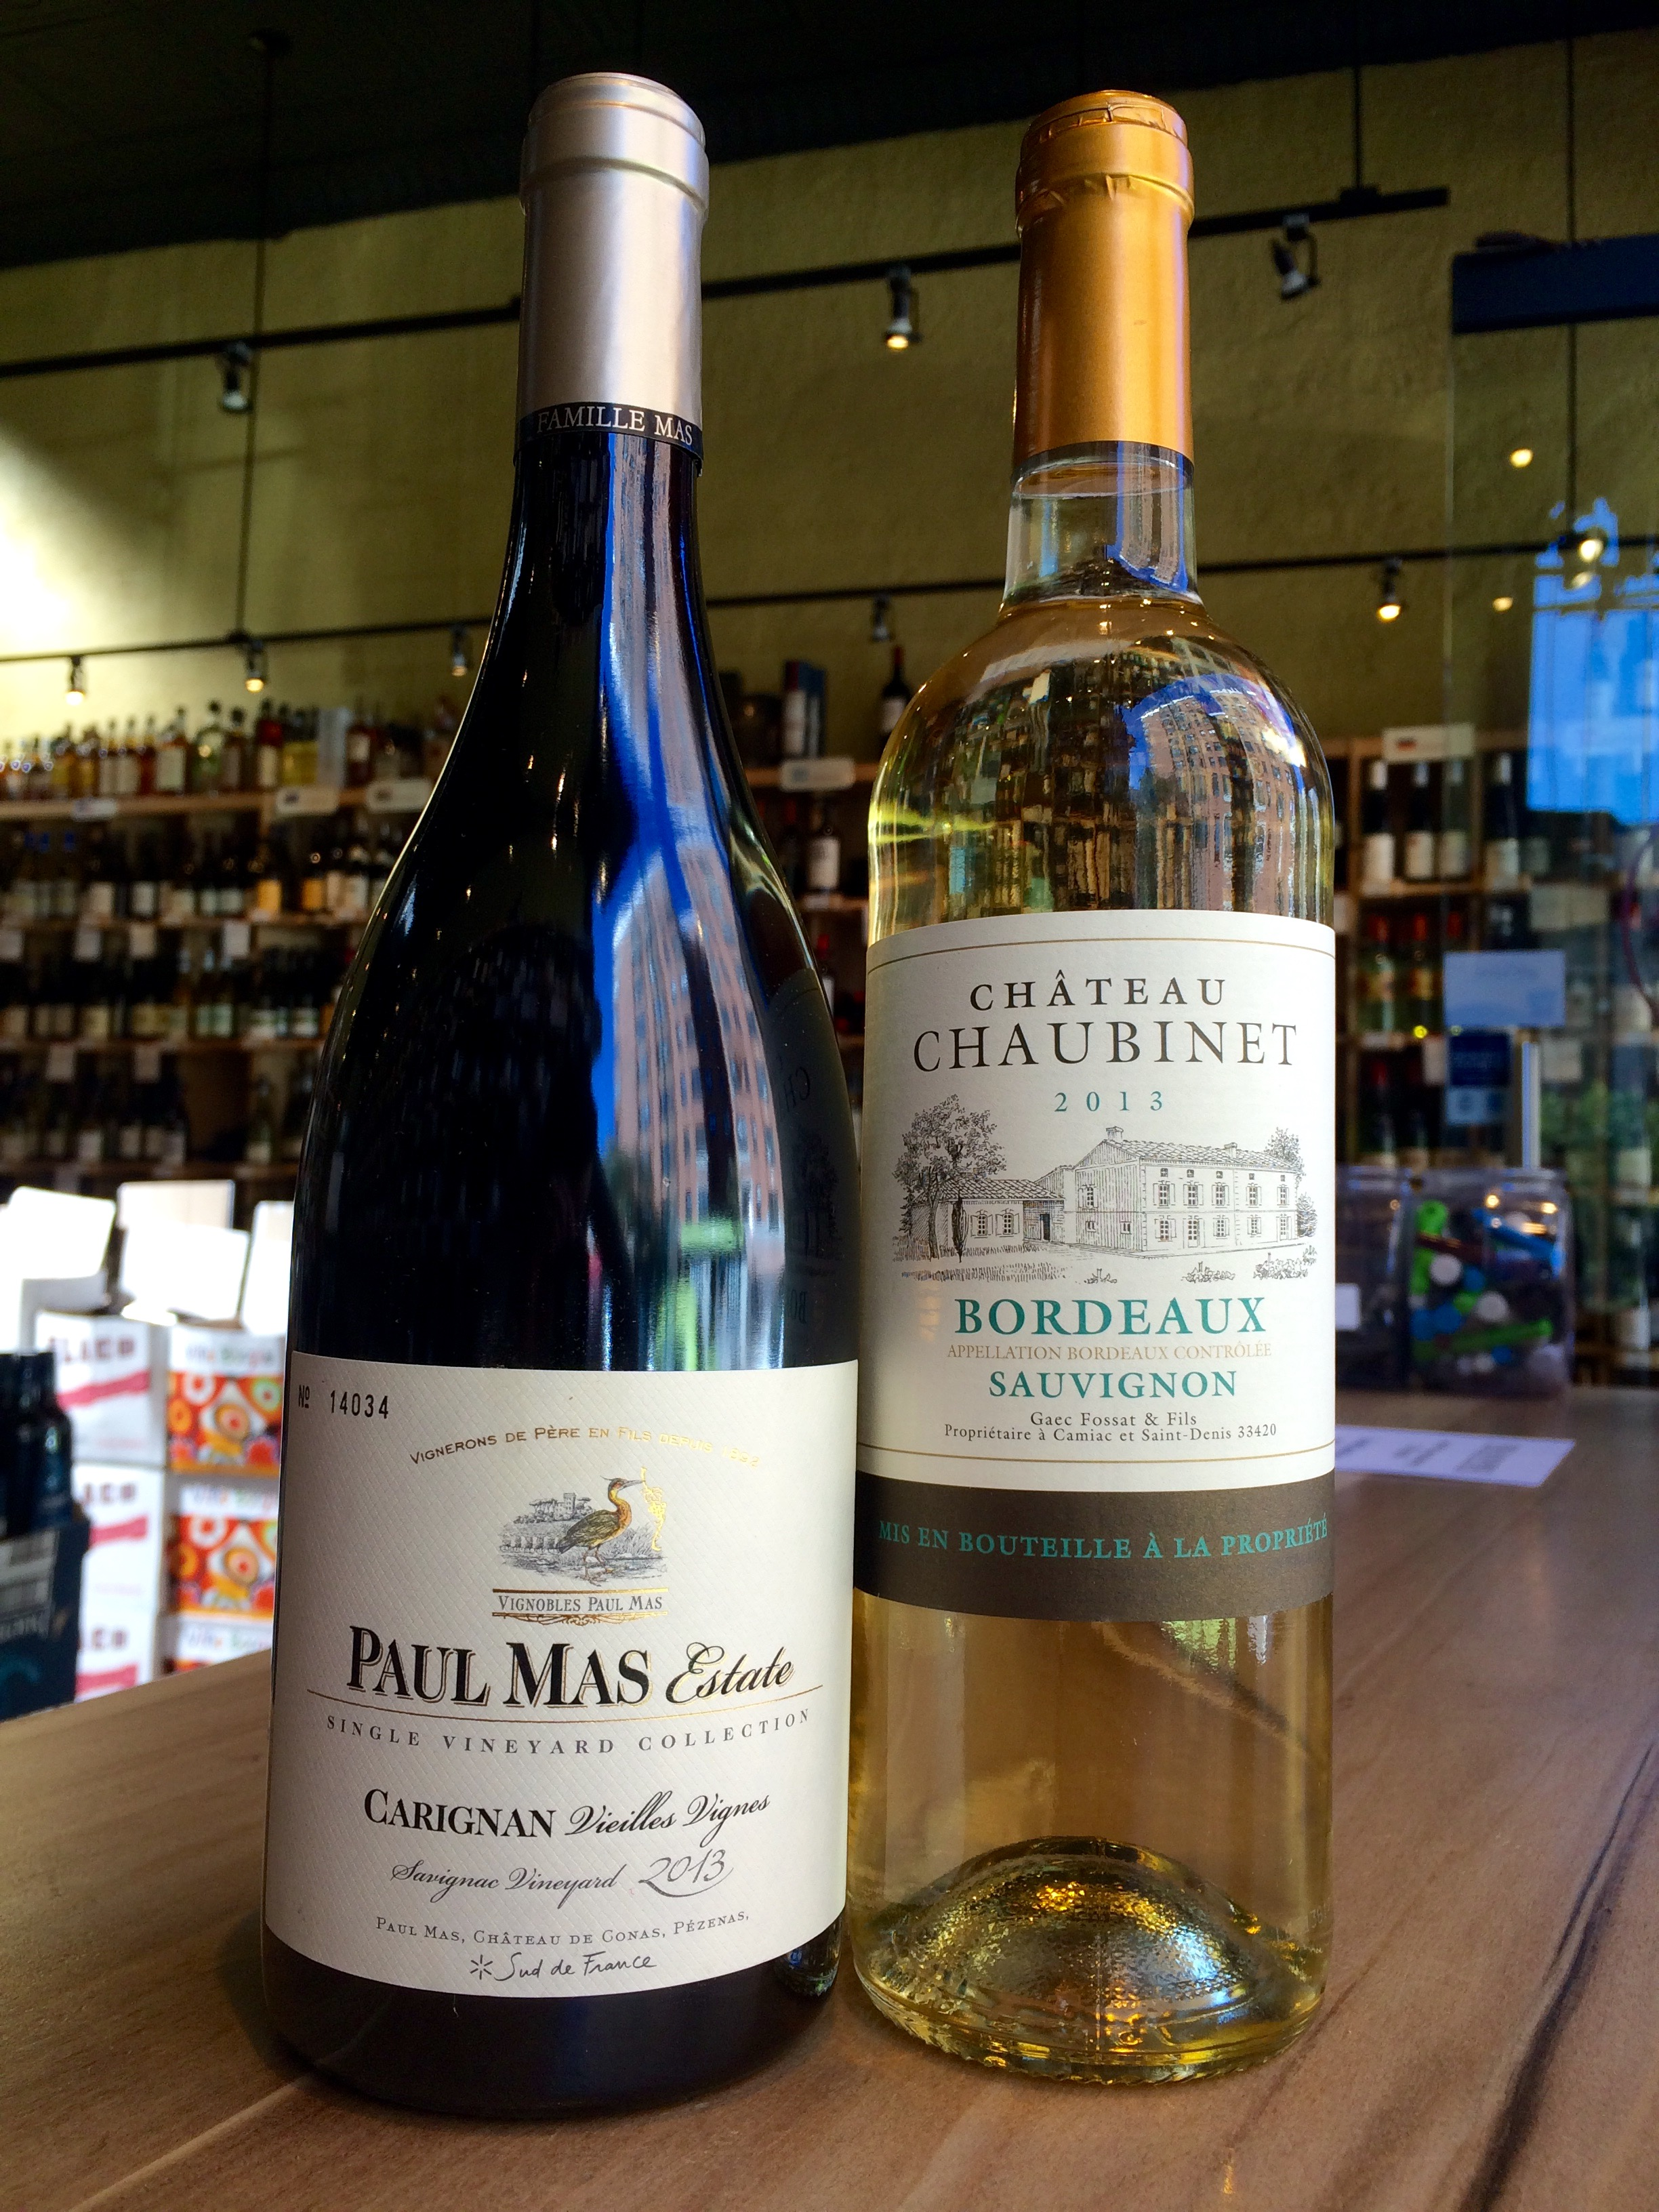 2013 Paul Mas Estate Carignan and 2013 Chateau Chaubinet Sauvignon